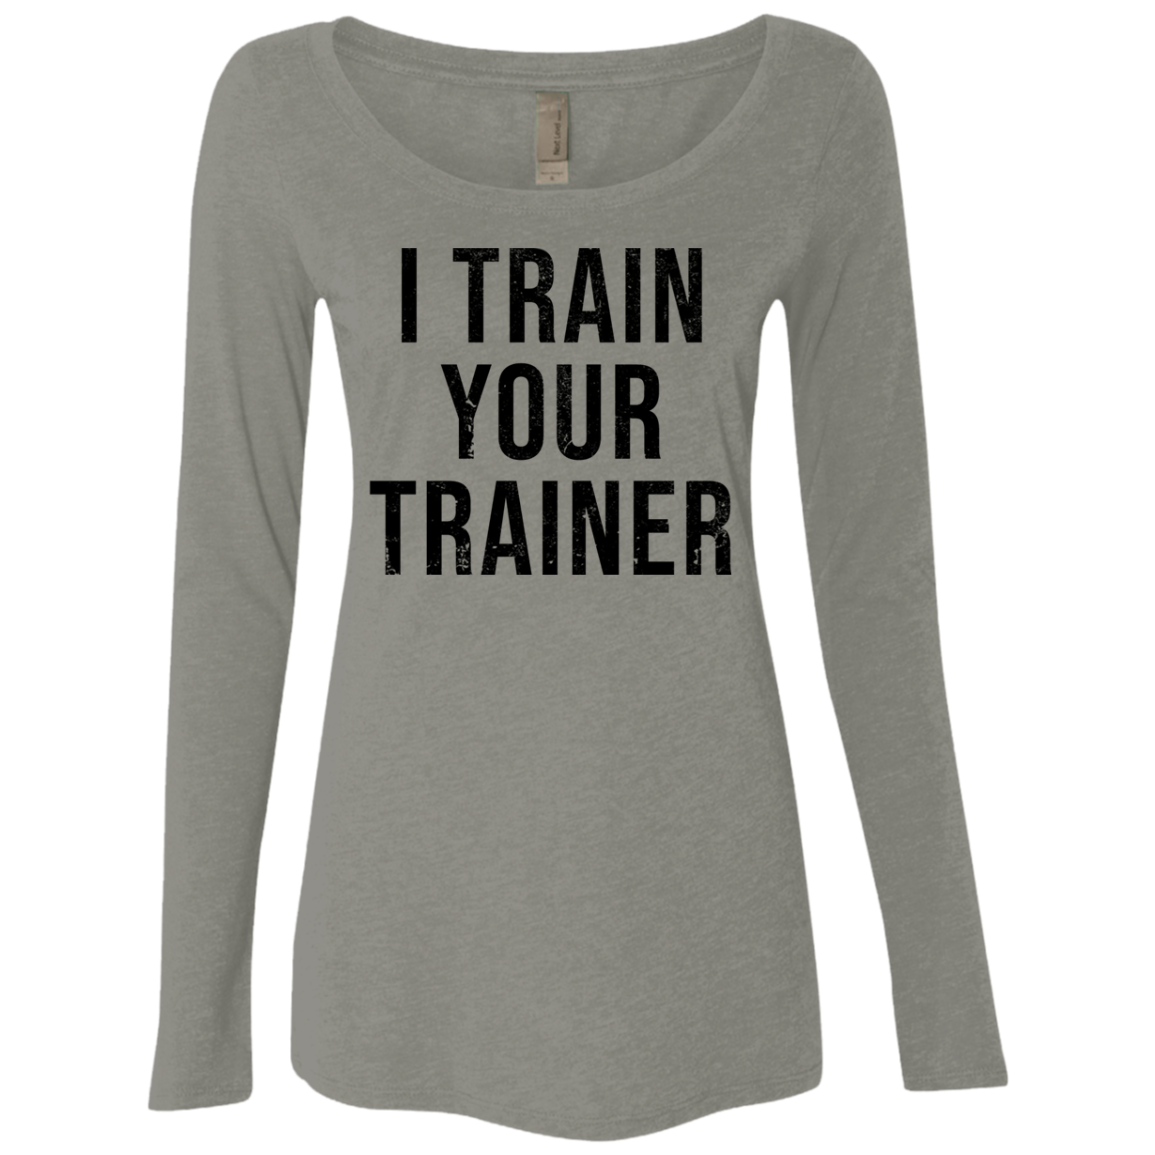 I Train Your Trainer Women's Long Sleeve Tee